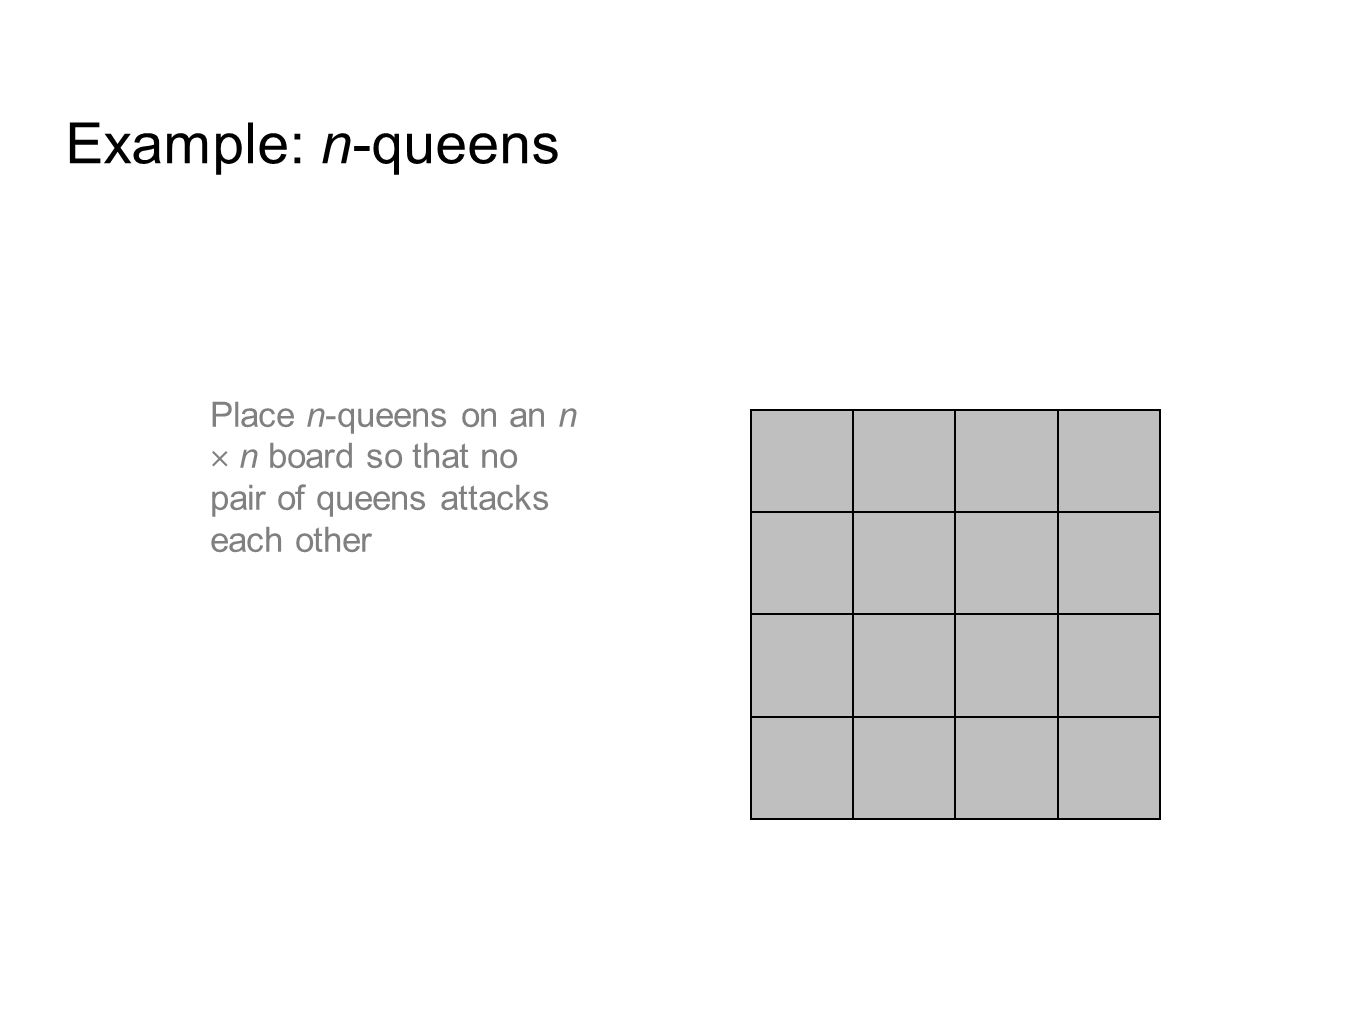 Example: n-queens Place n-queens on an n  n board so that no pair of queens attacks each other